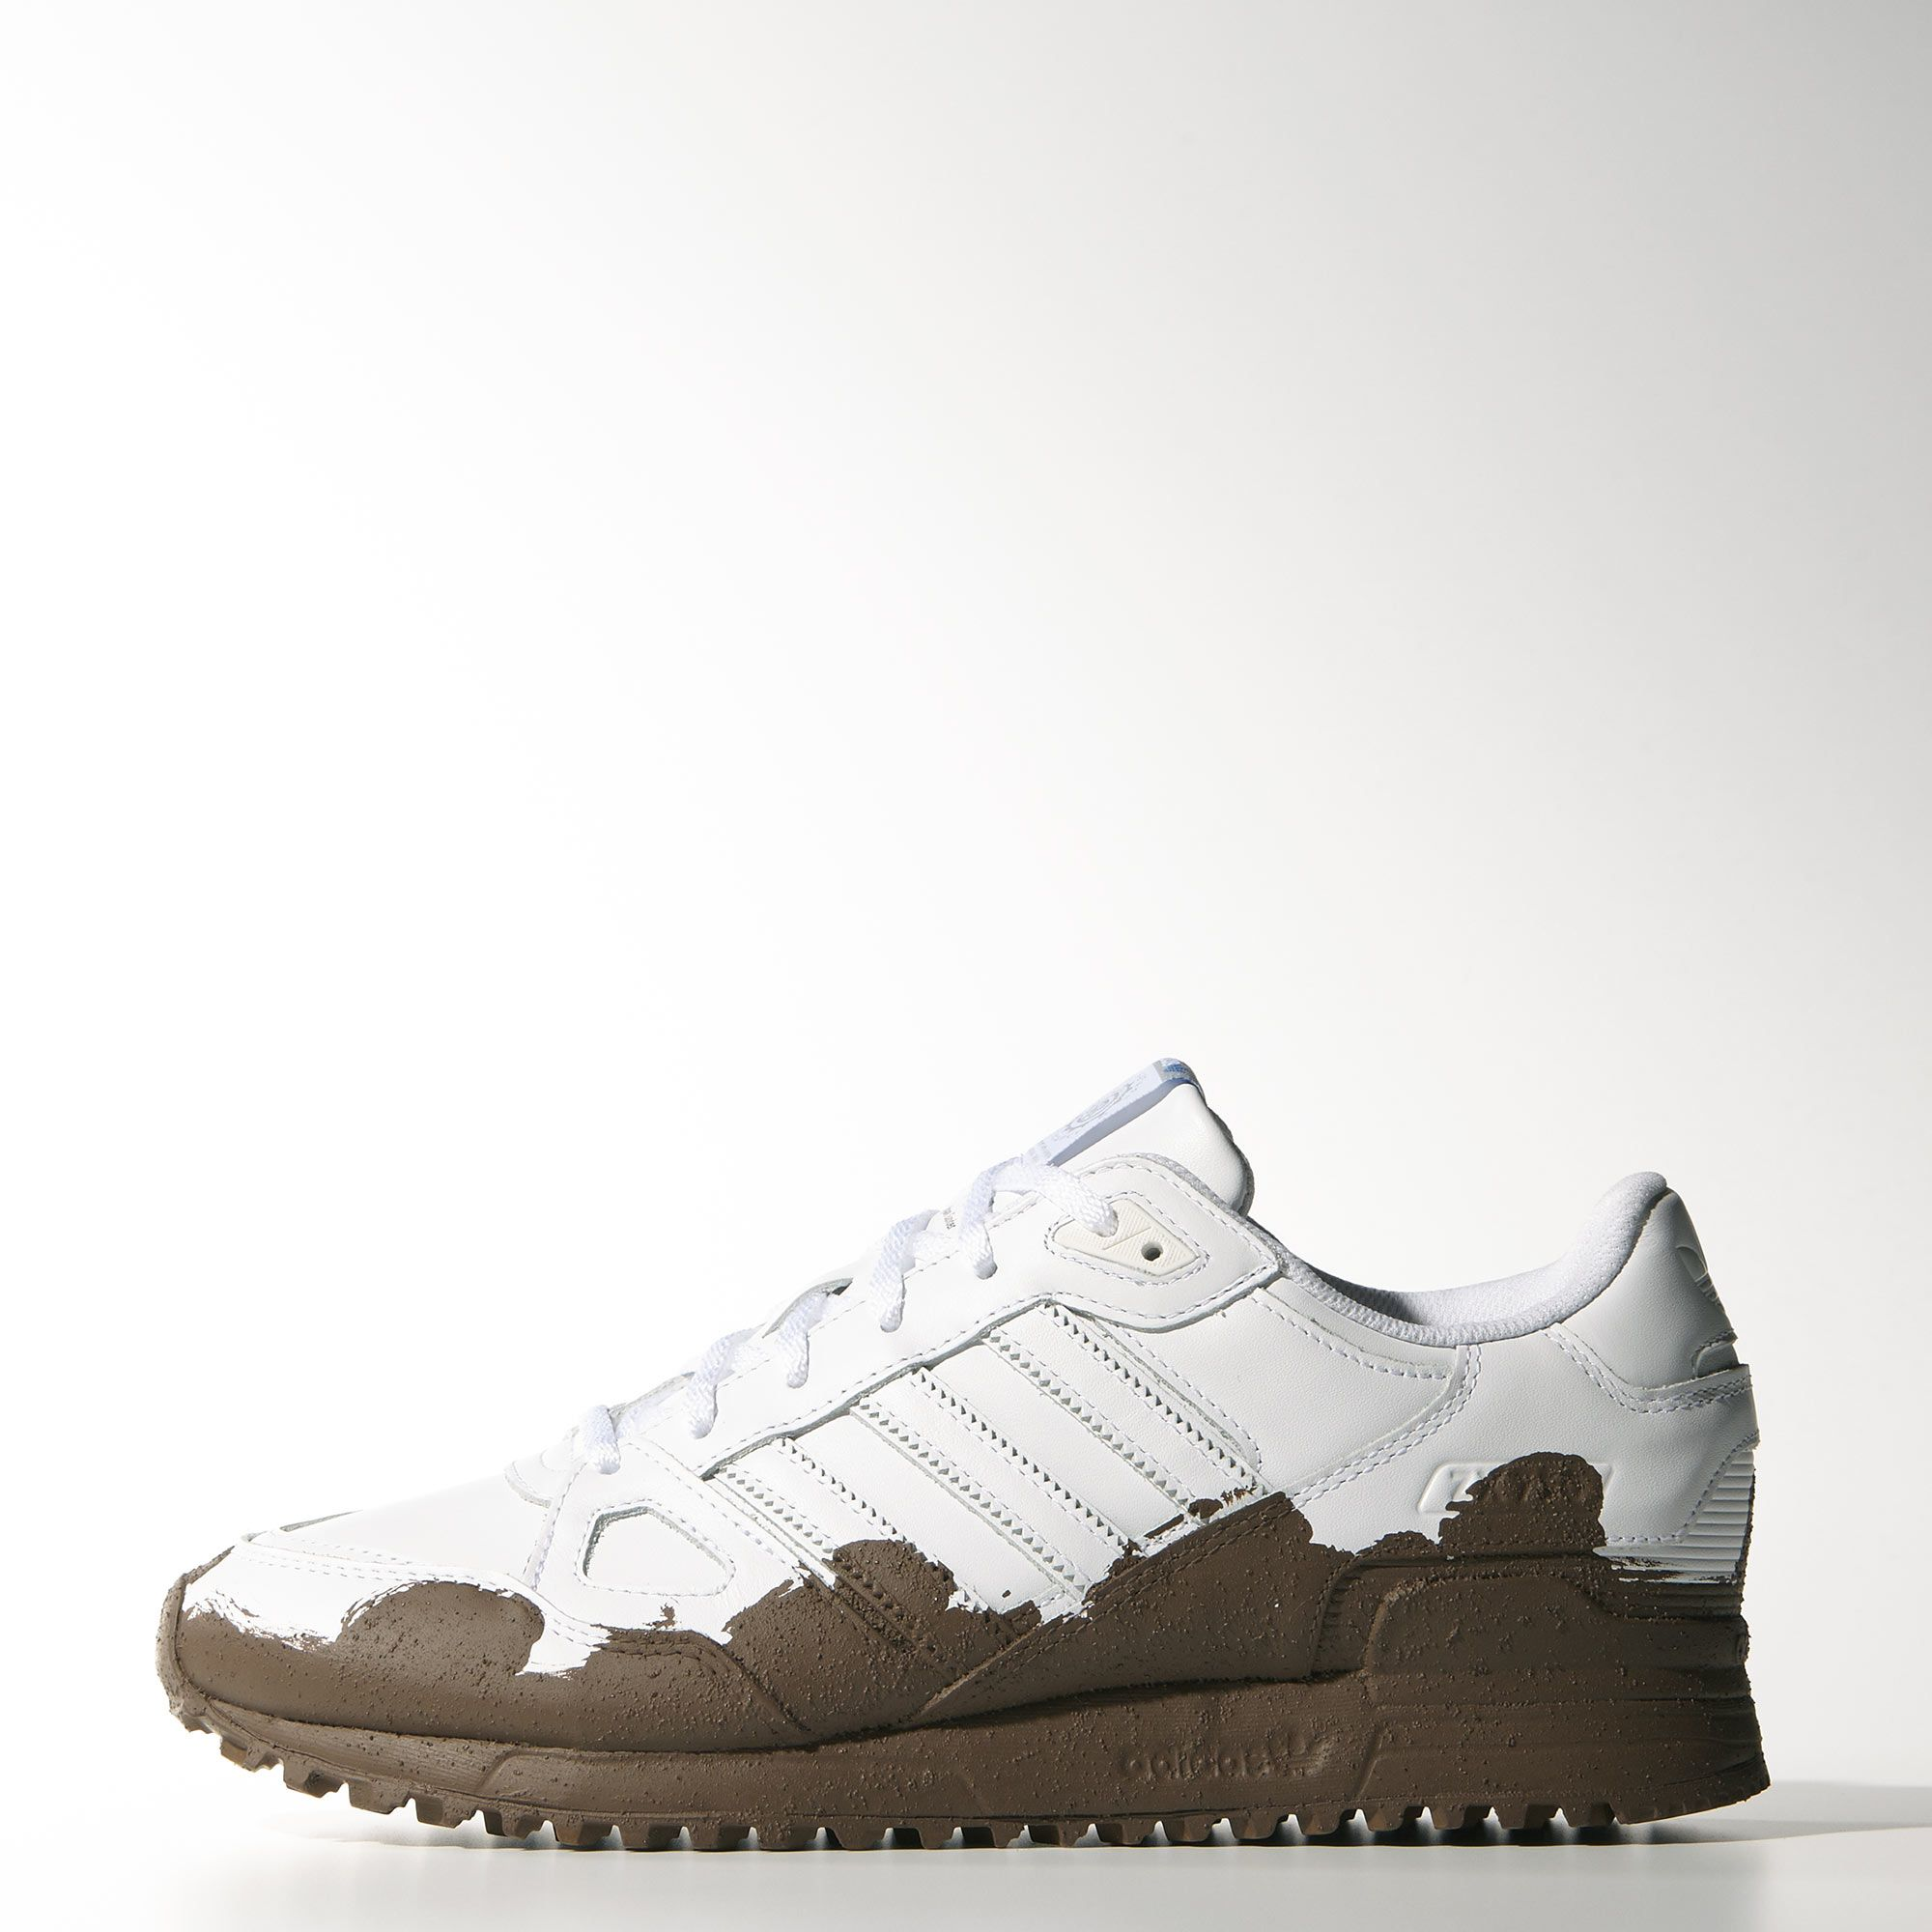 Adidas ZX 750 Shoes. These sneakers re-imagine the iconic ZX 750 running  shoe